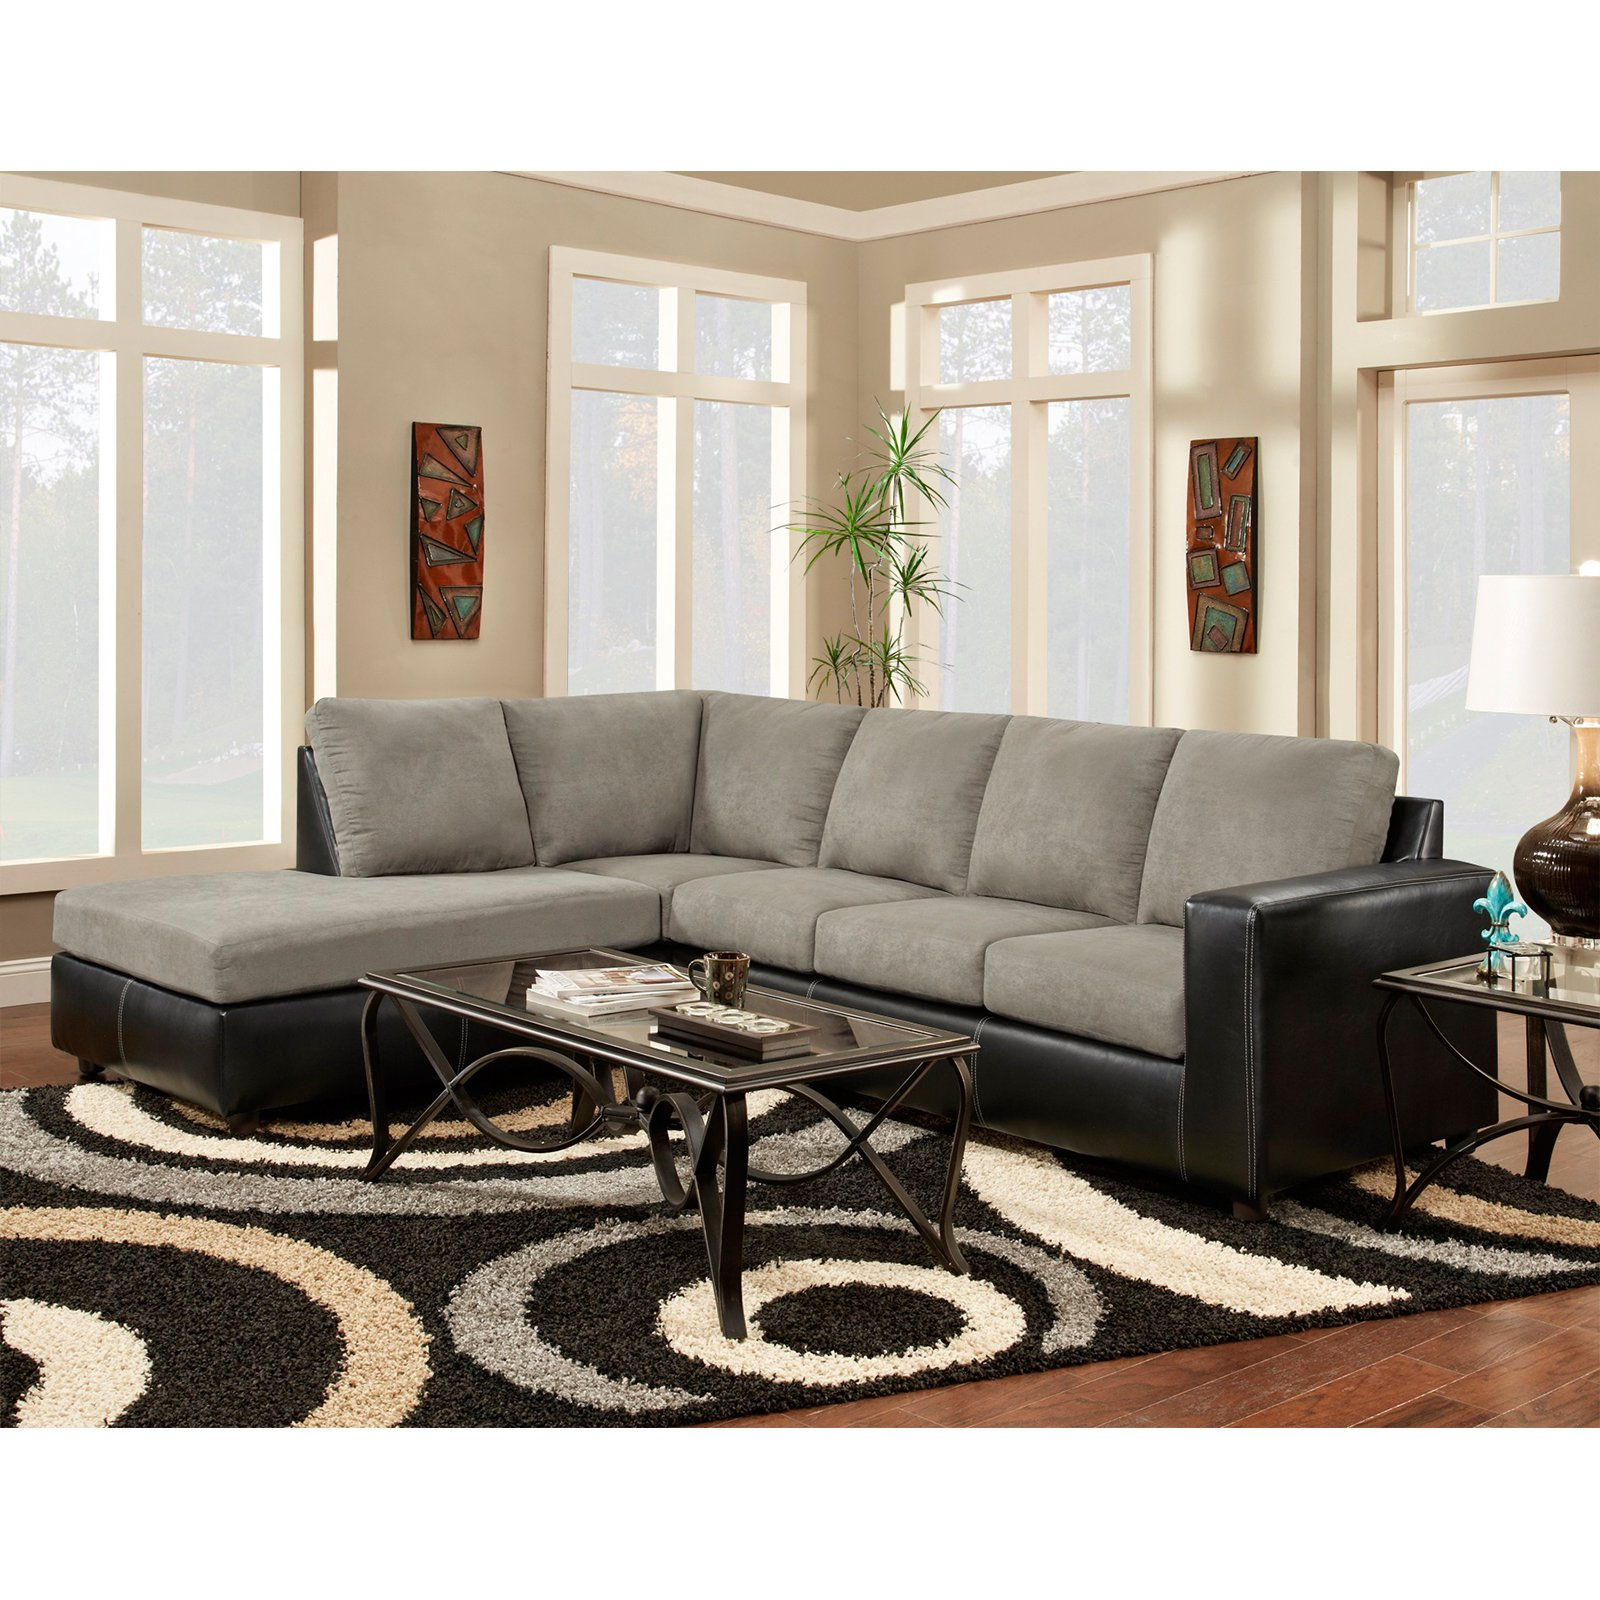 Chelsea Home Furniture Harford 2 Piece